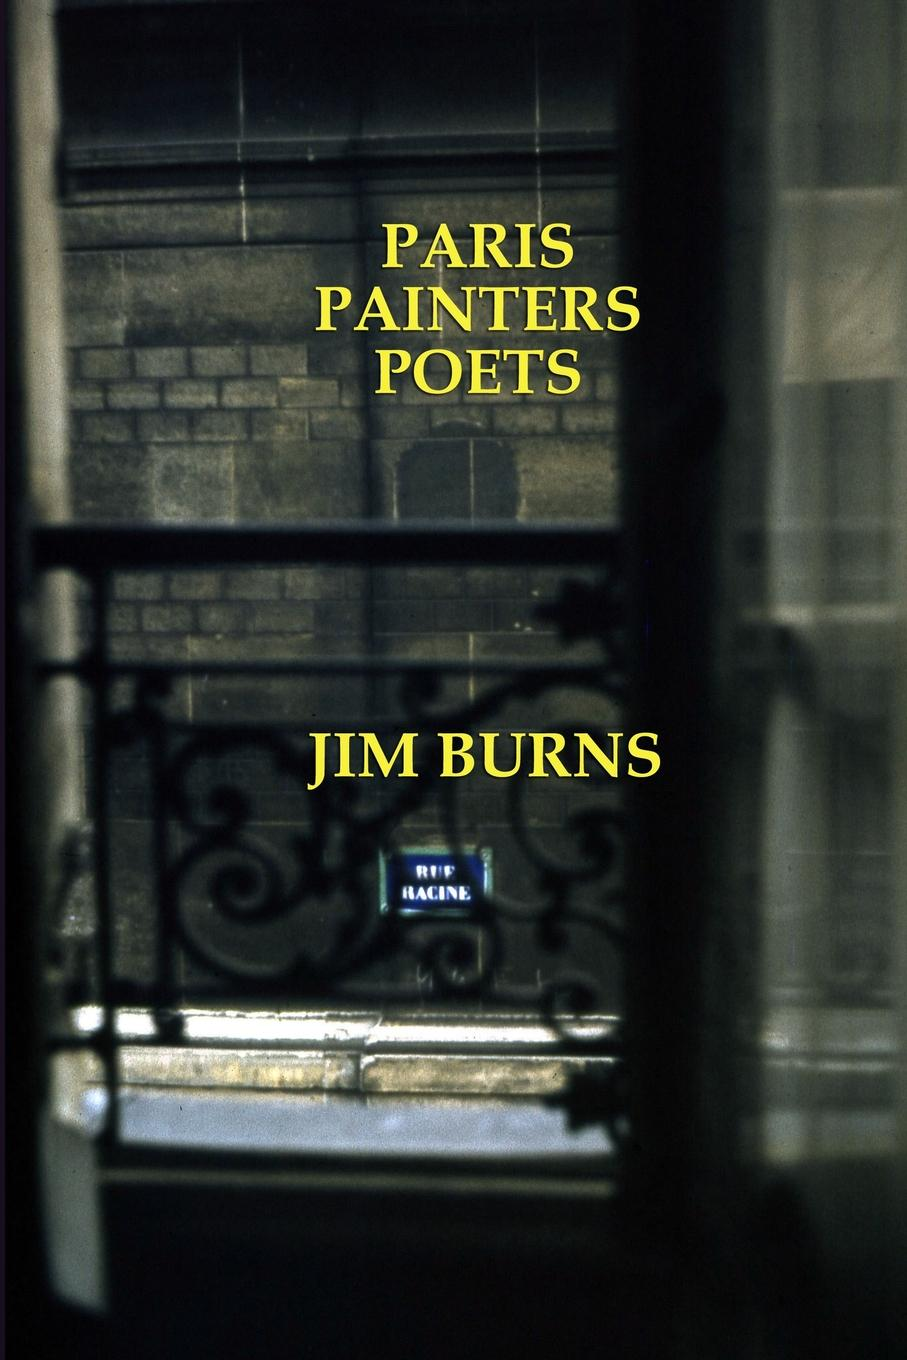 Jim Burns Paris, Painters, Poets